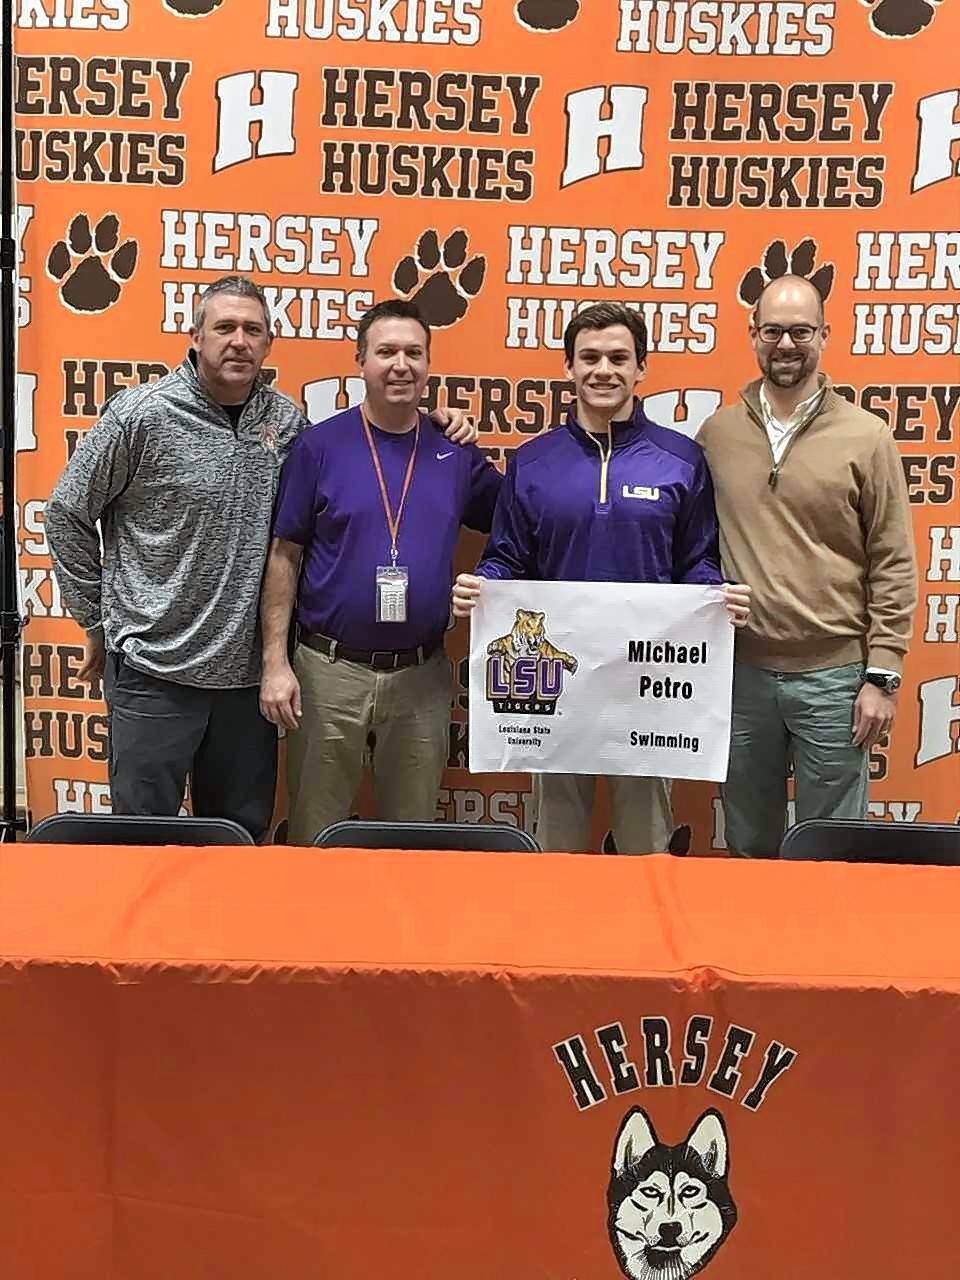 From left, Hersey athletic director Steve Messer, coach Dick Mortensen, Michael Petro and assistant coach Jeff Baker gather to announced Petro's signing with the Louisiana State swimming program.